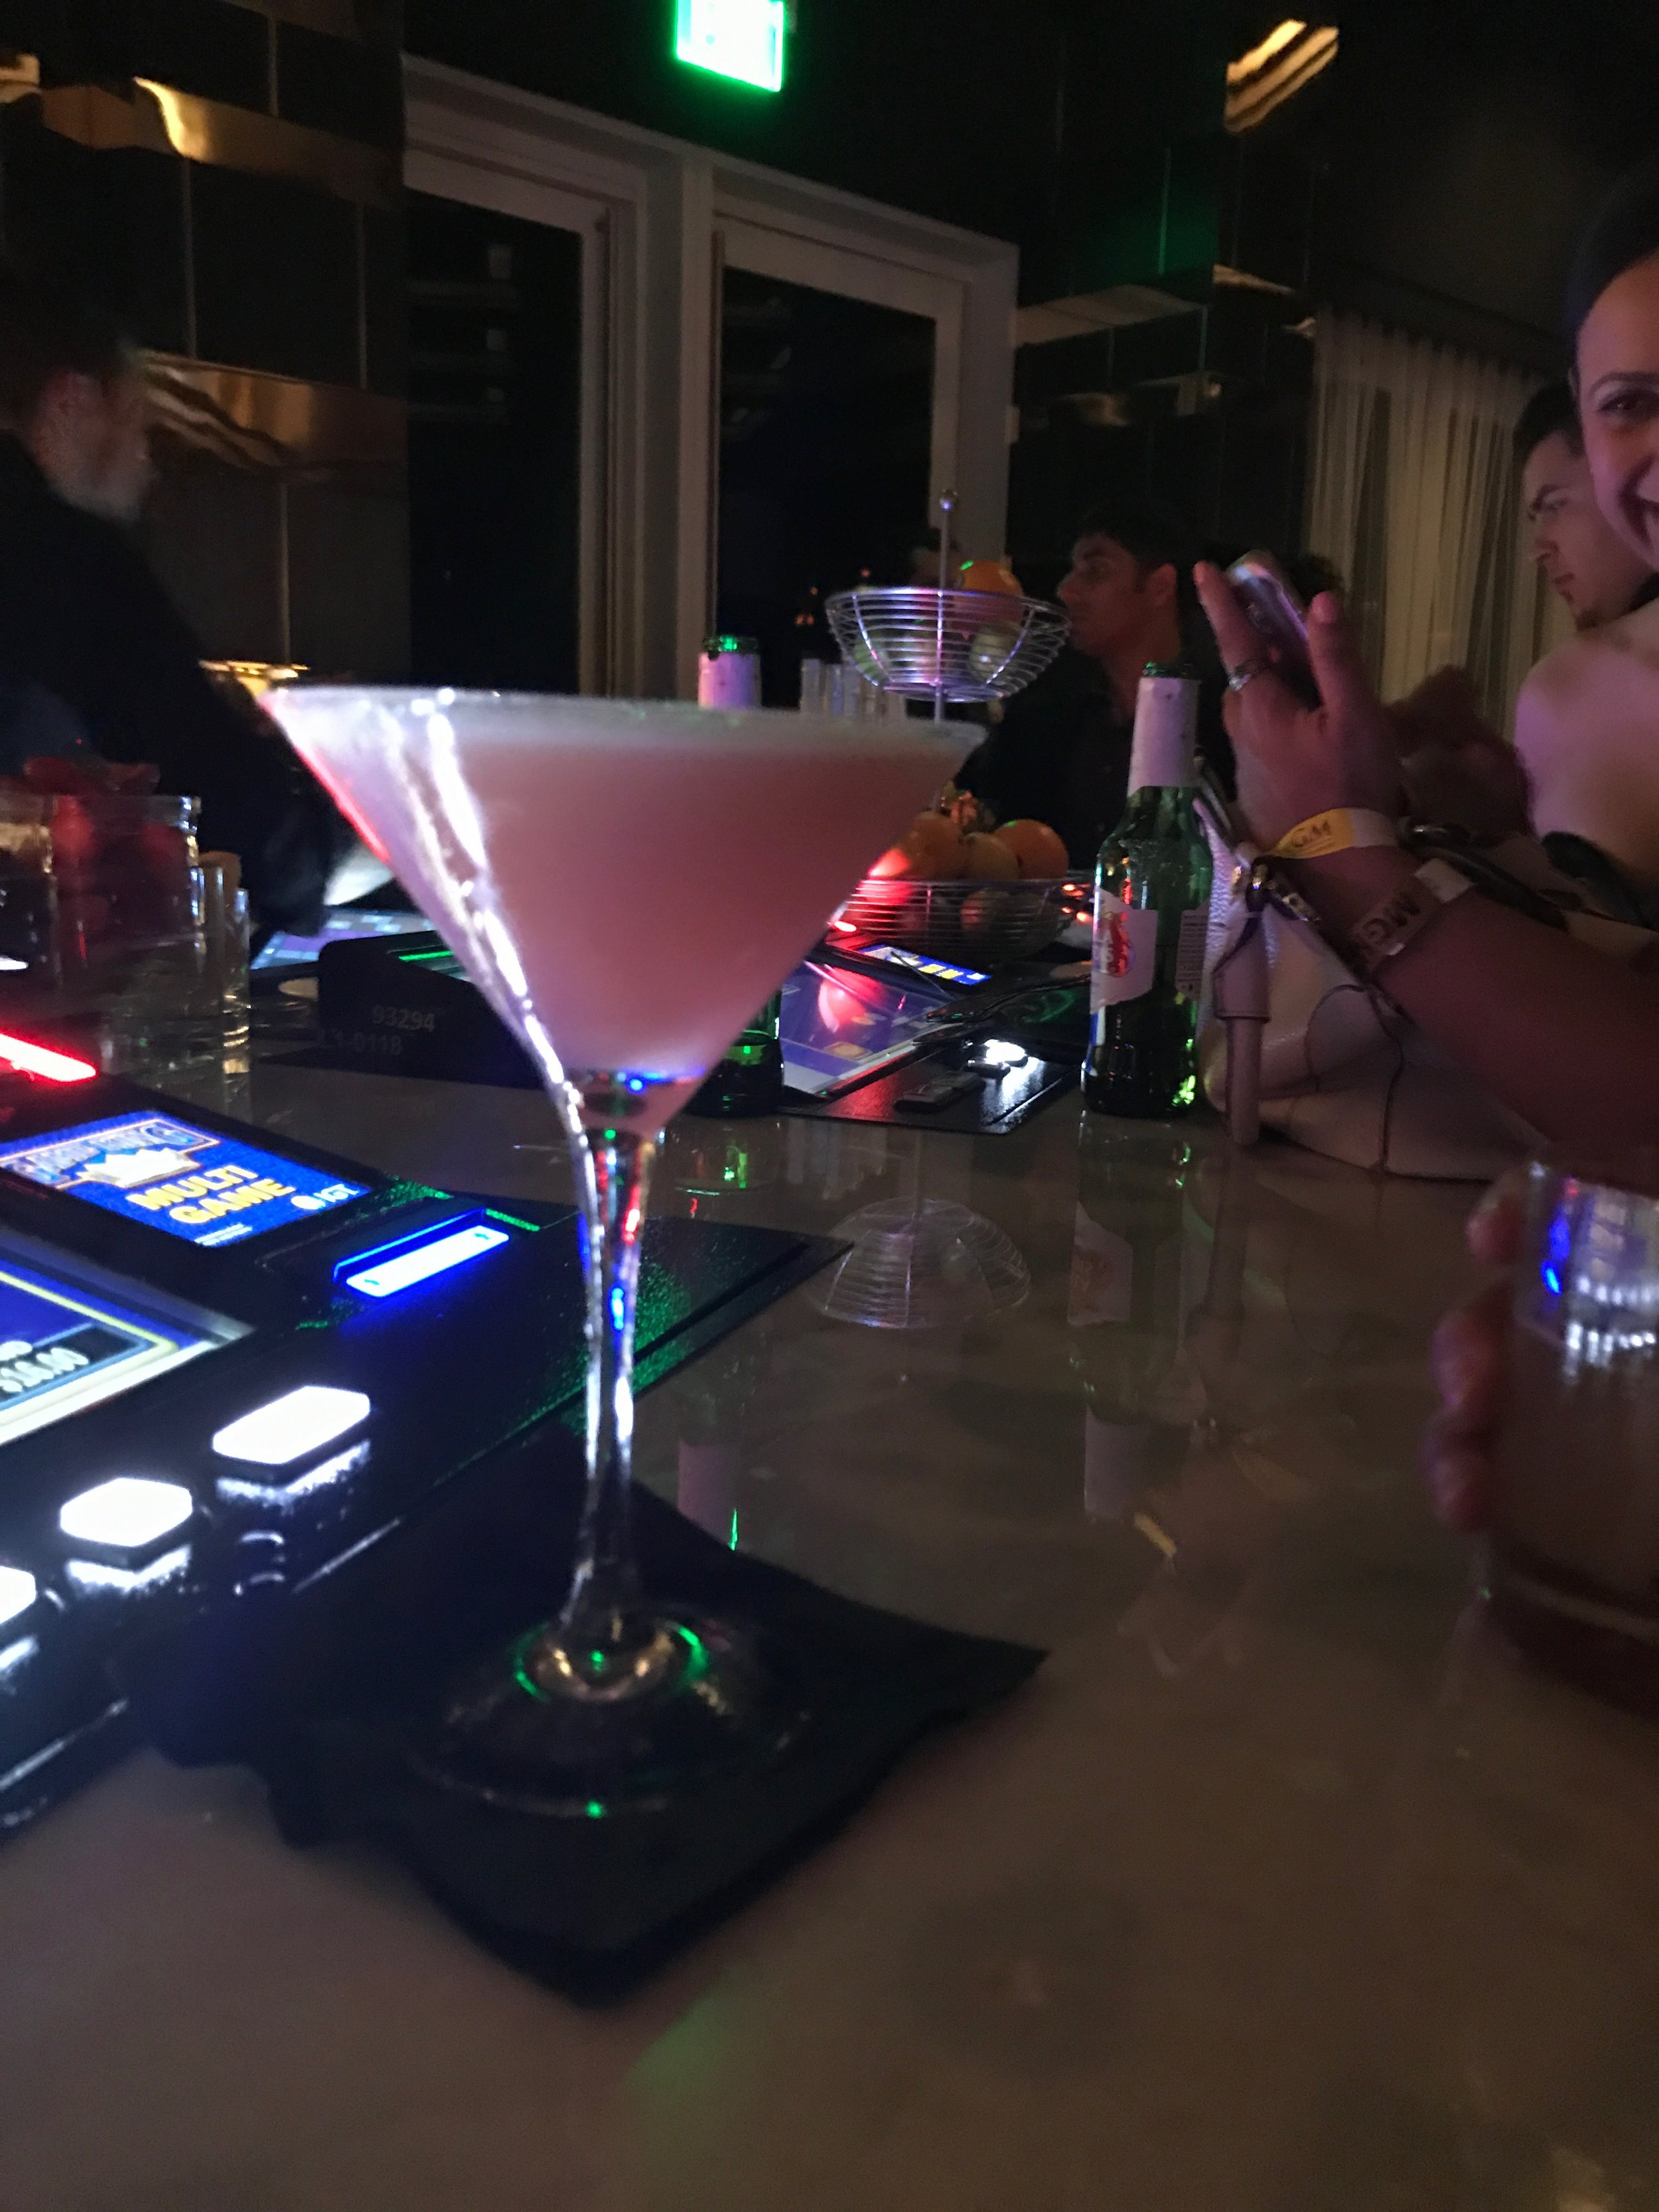 the pink drink